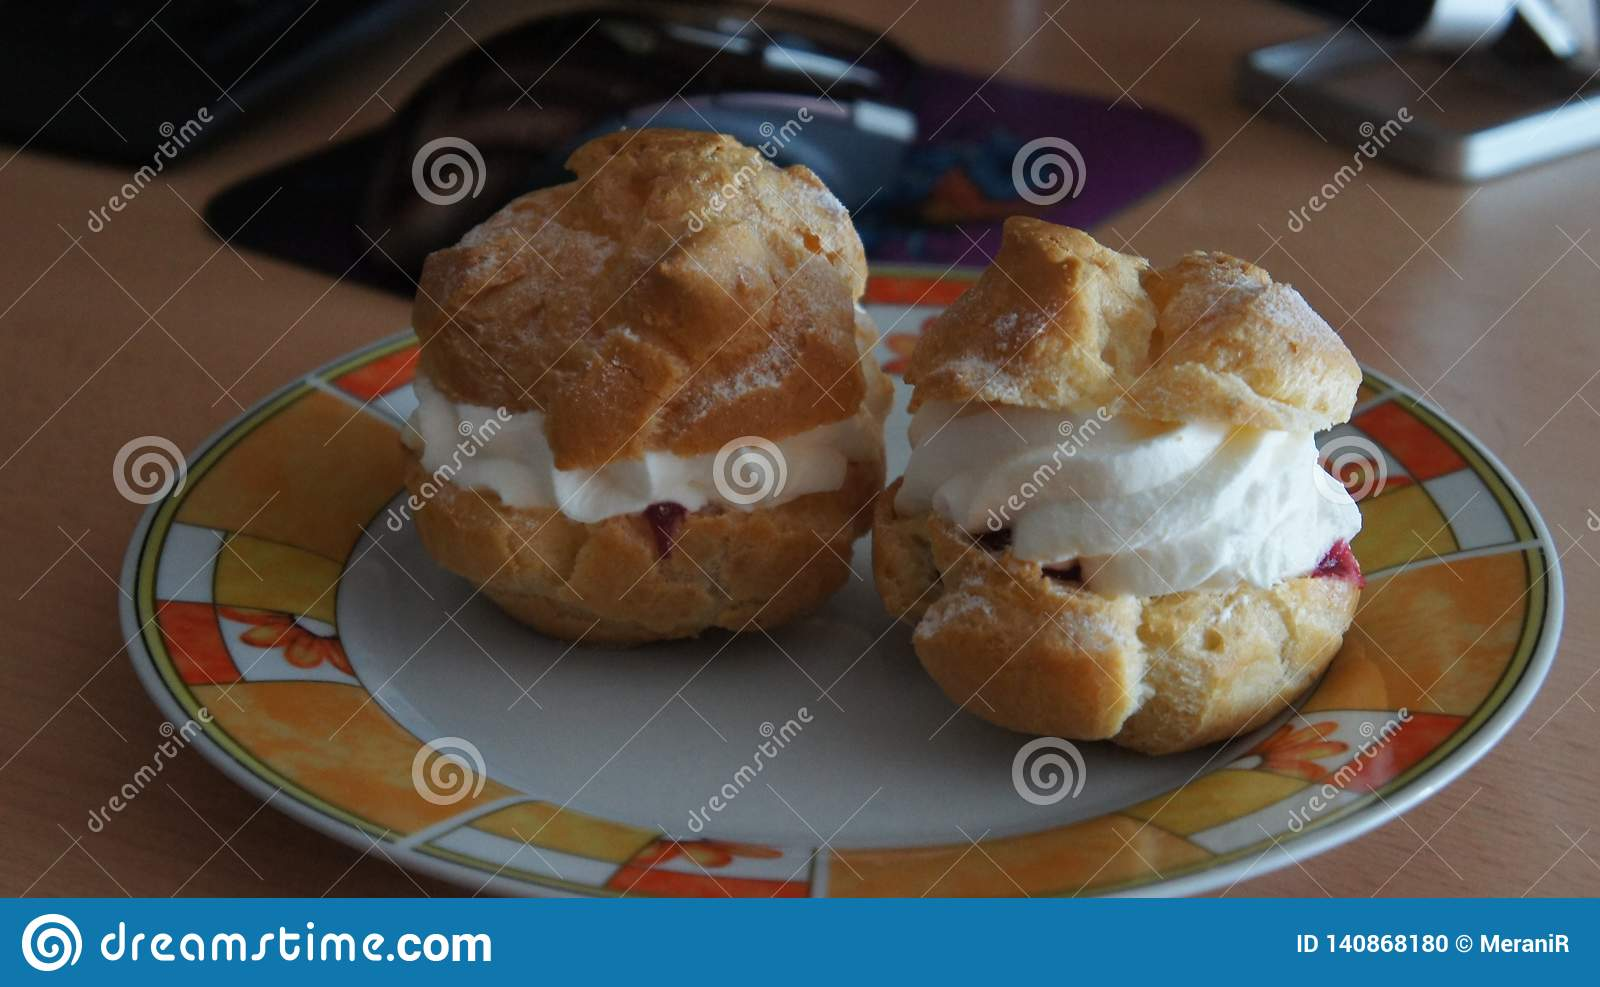 Cream puffs with cherries and sweet cream filling.